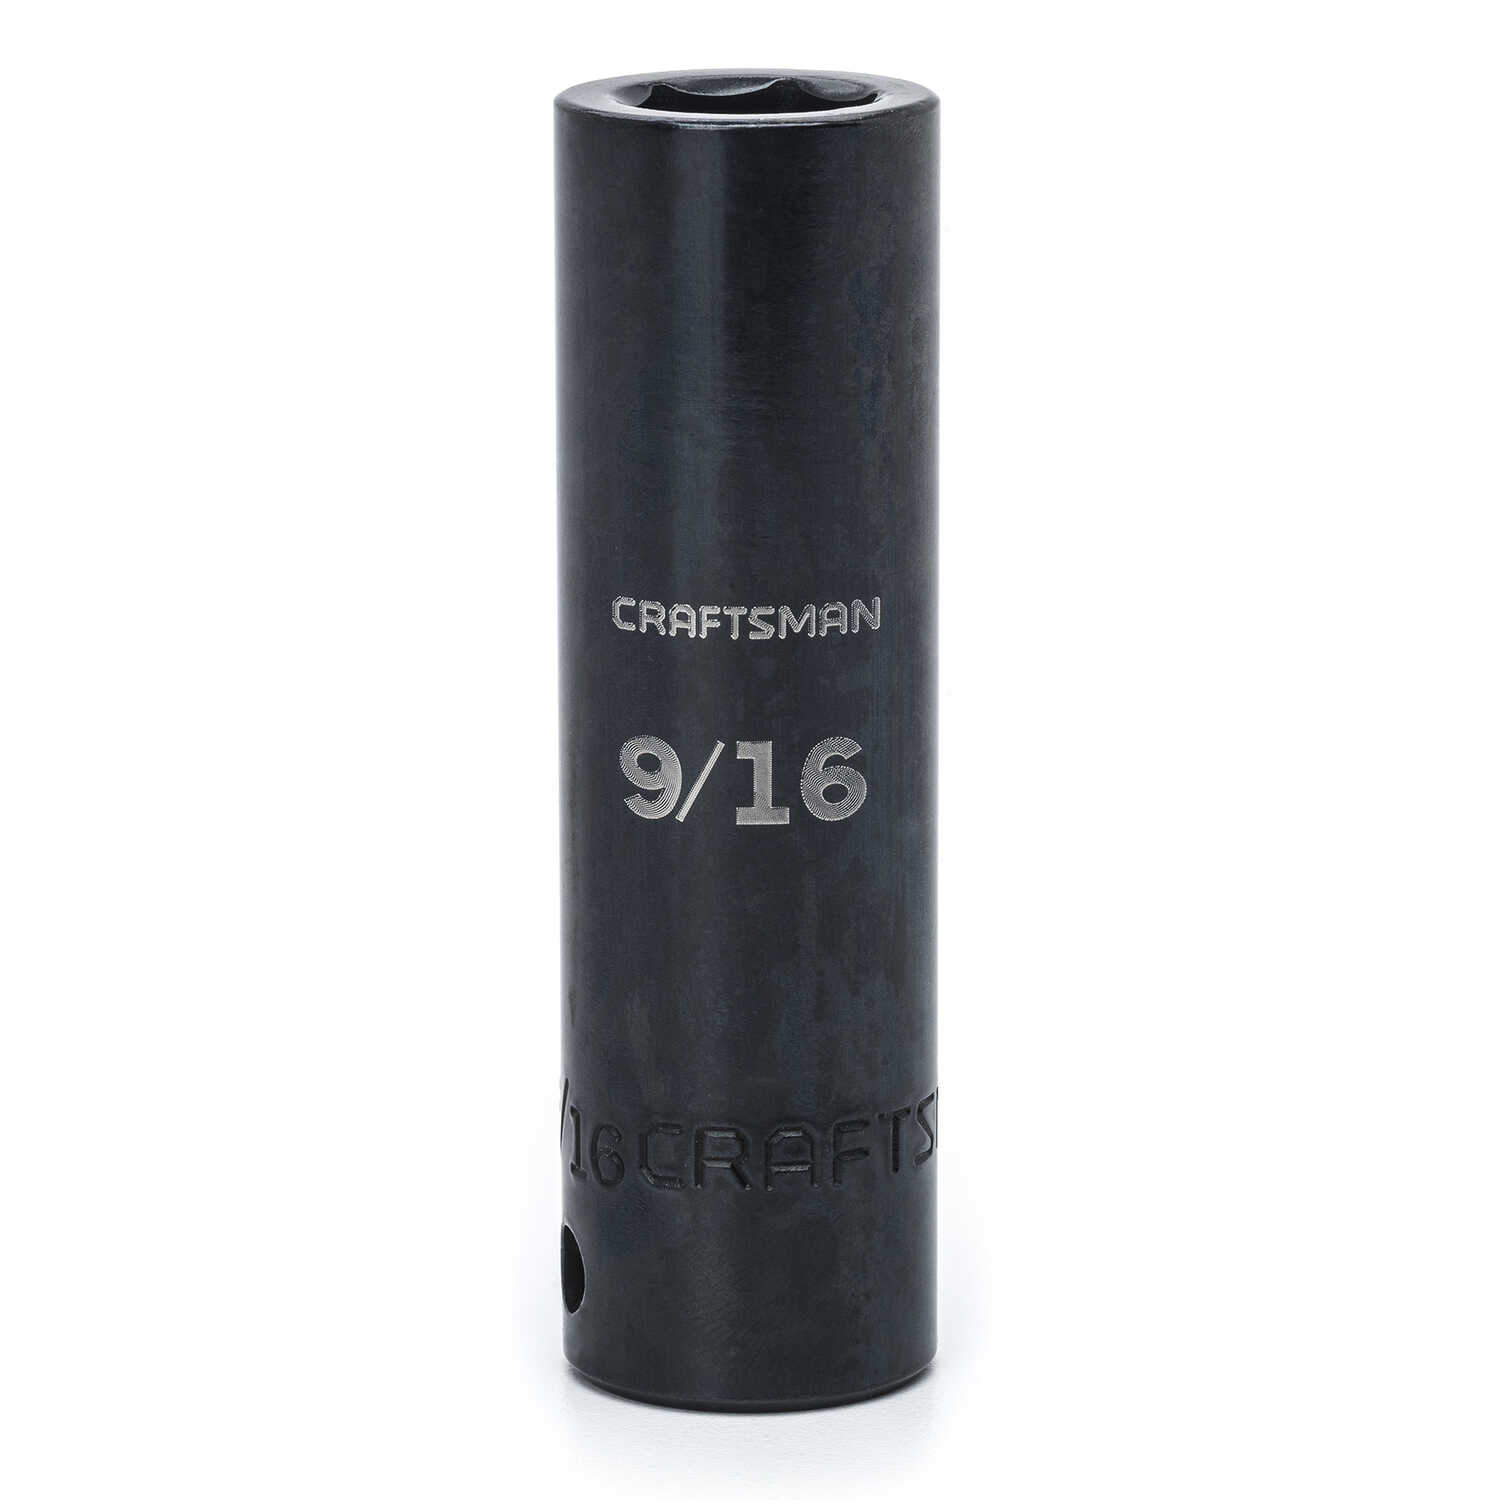 Craftsman  9/16 in.  x 1/2 in. drive  SAE  6 Point Deep  Impact Socket  1 pc.